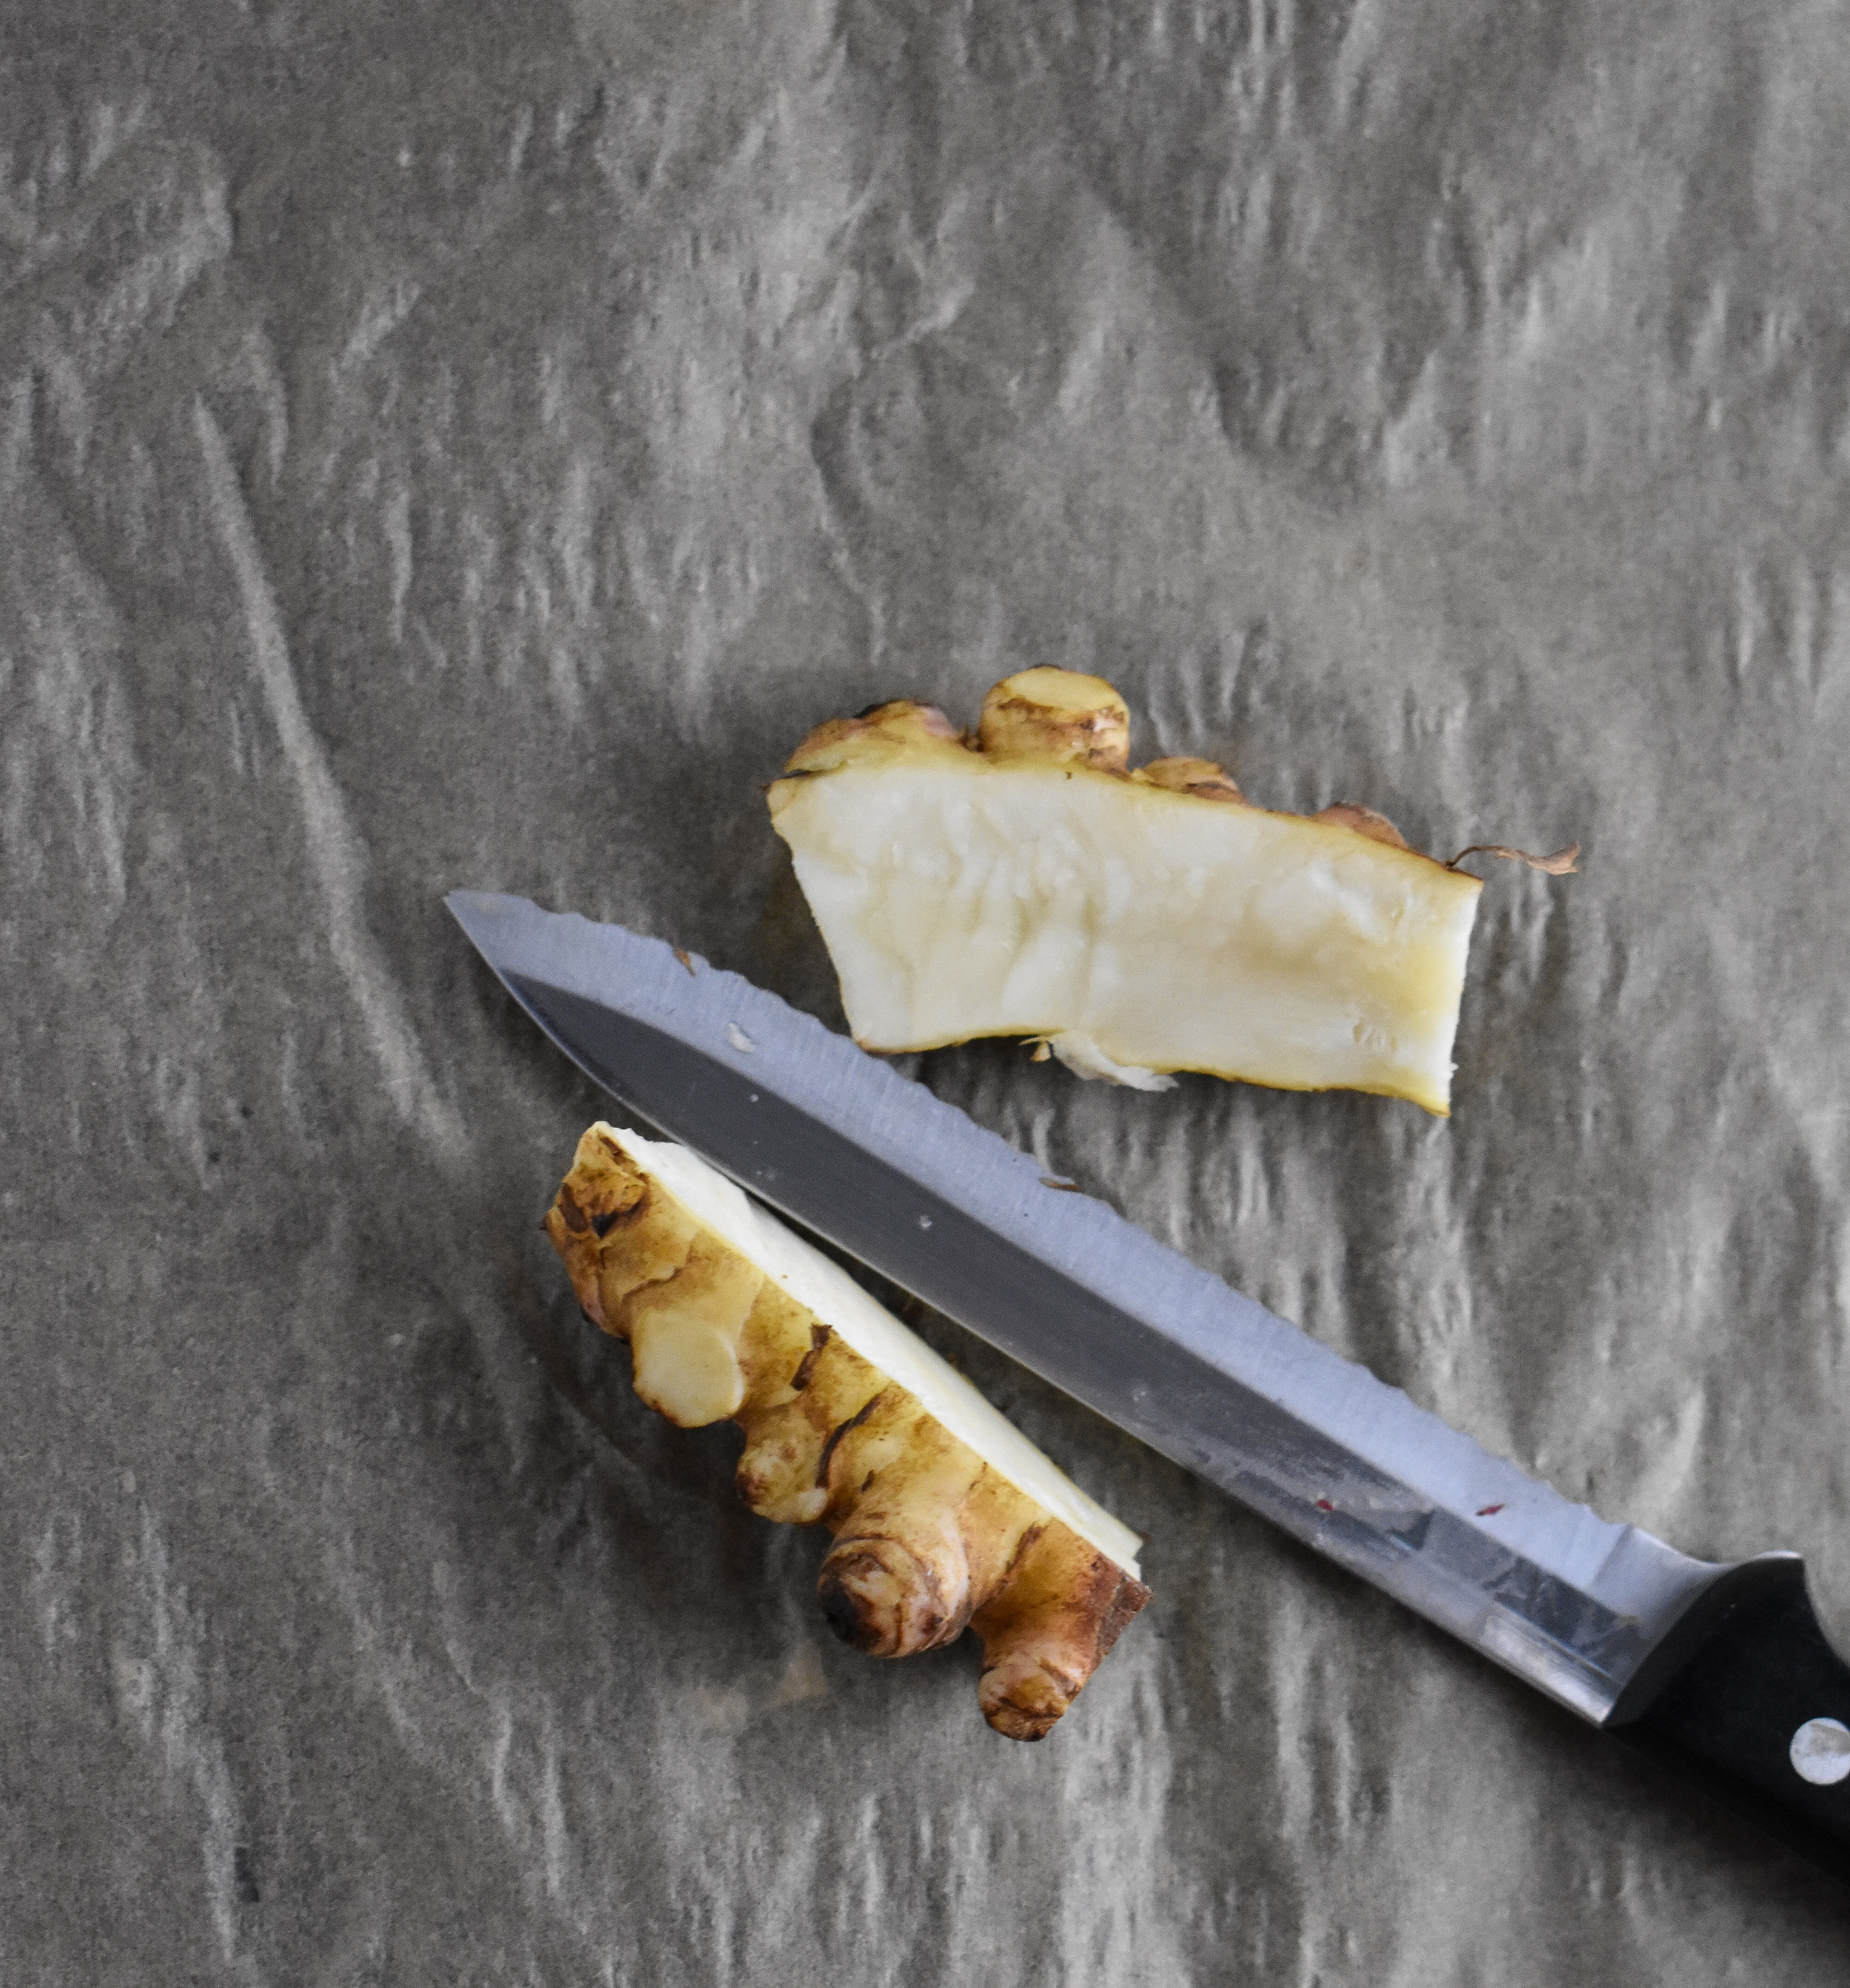 1. To dice the sunchokes, cut them just like potatoes. I like to slice them down the middle and then cut small cubes/squares from there.